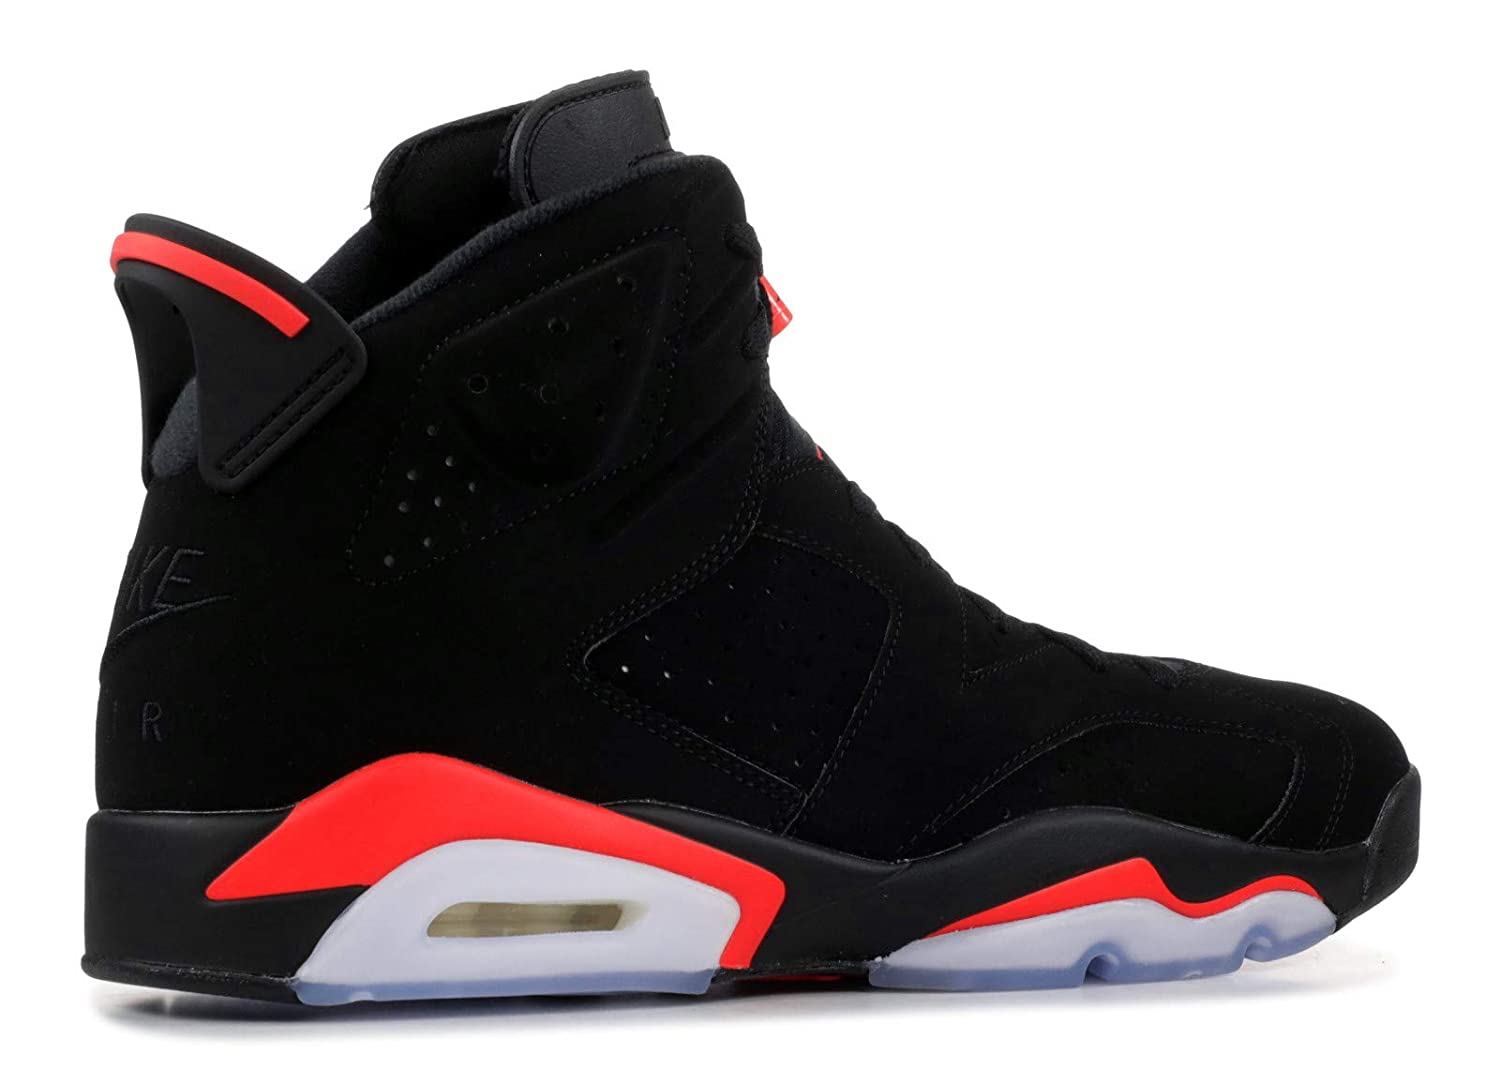 newest collection 8203c fabb7 Amazon.com | Nike Air Jordan 6 Retro OG Black/Infrared 2019 ...